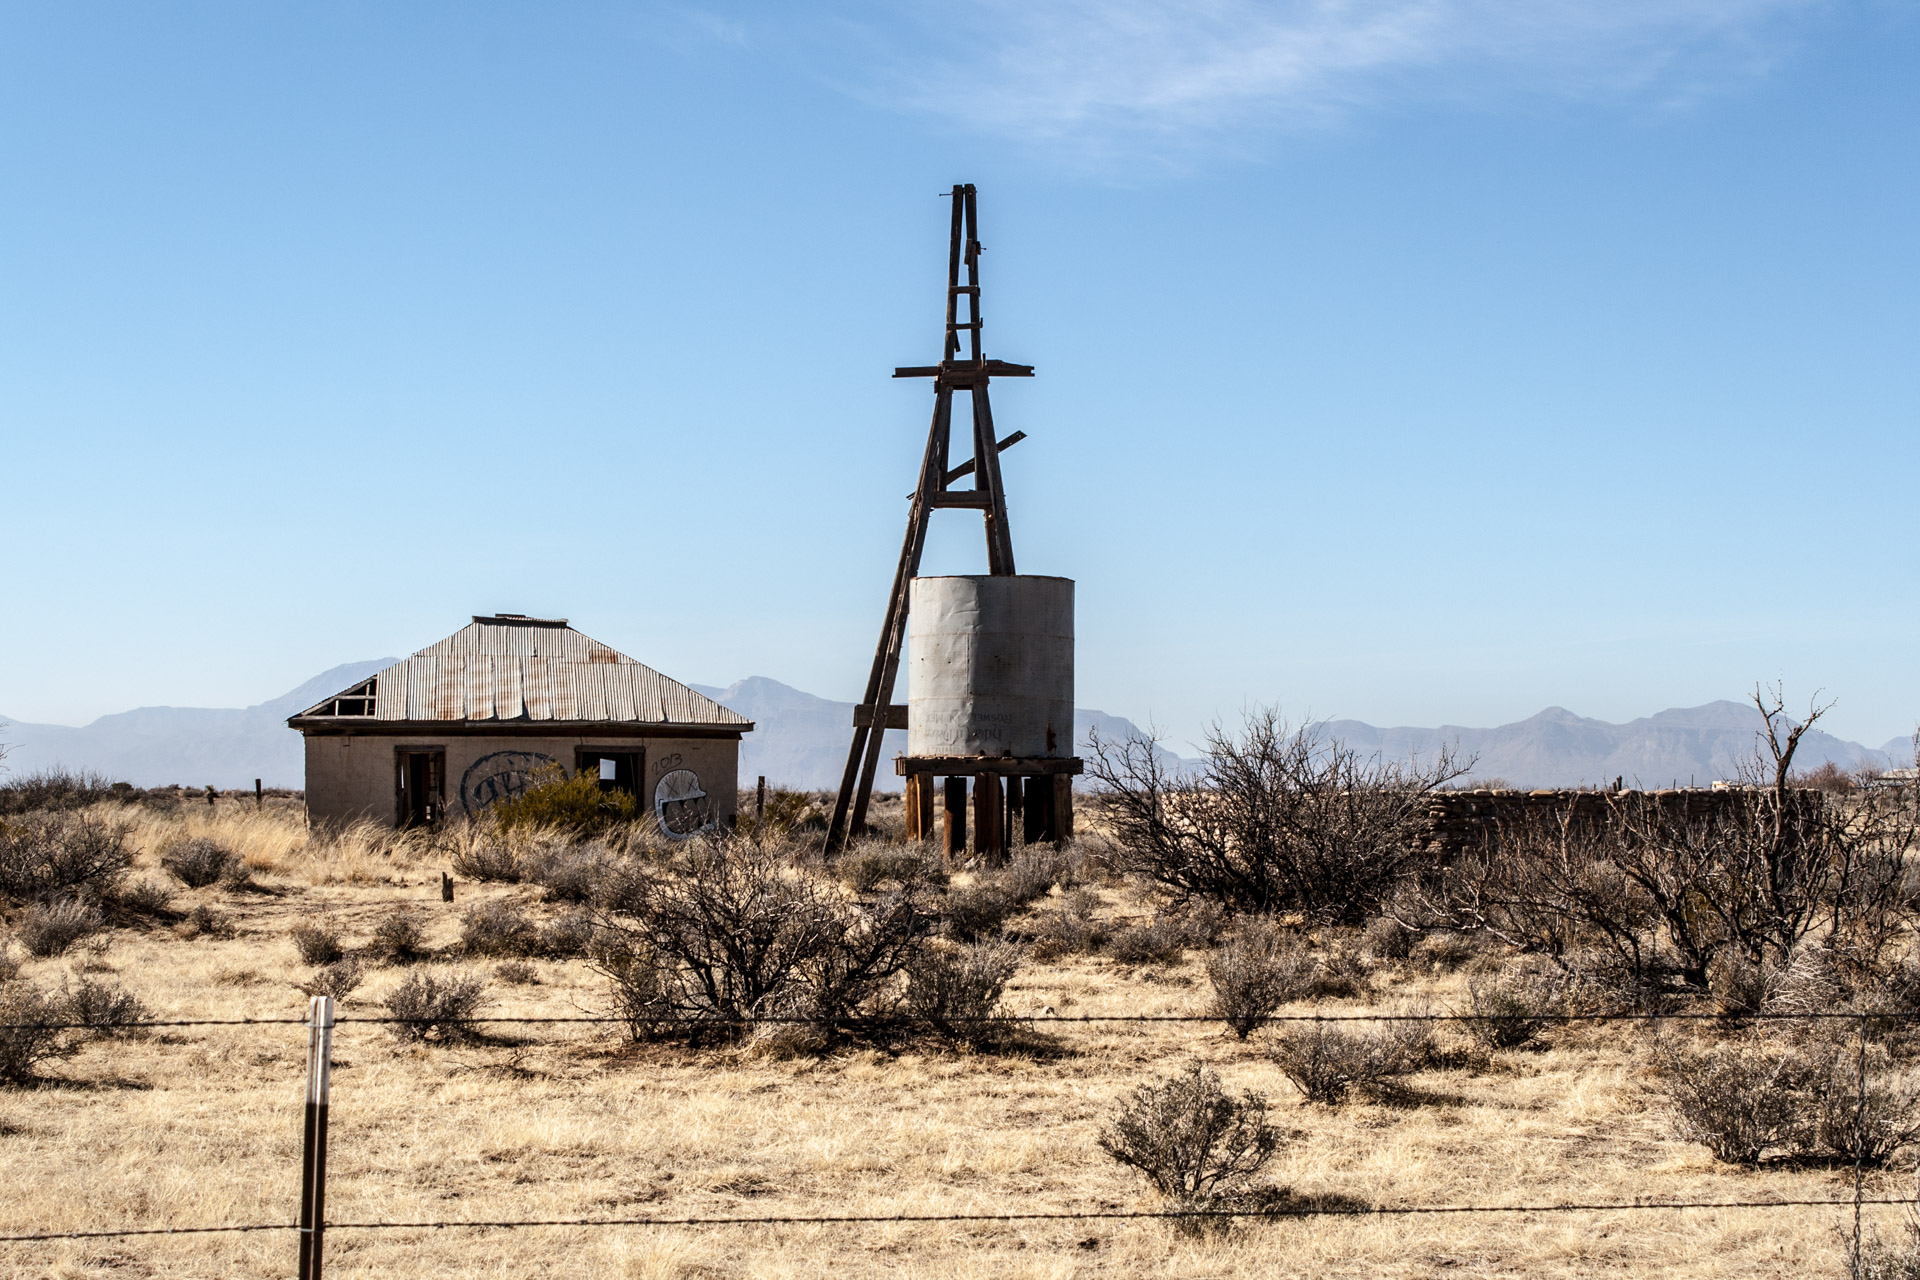 Tularosa, New Mexico - A Desert House With An Extra Large Well (front mid)